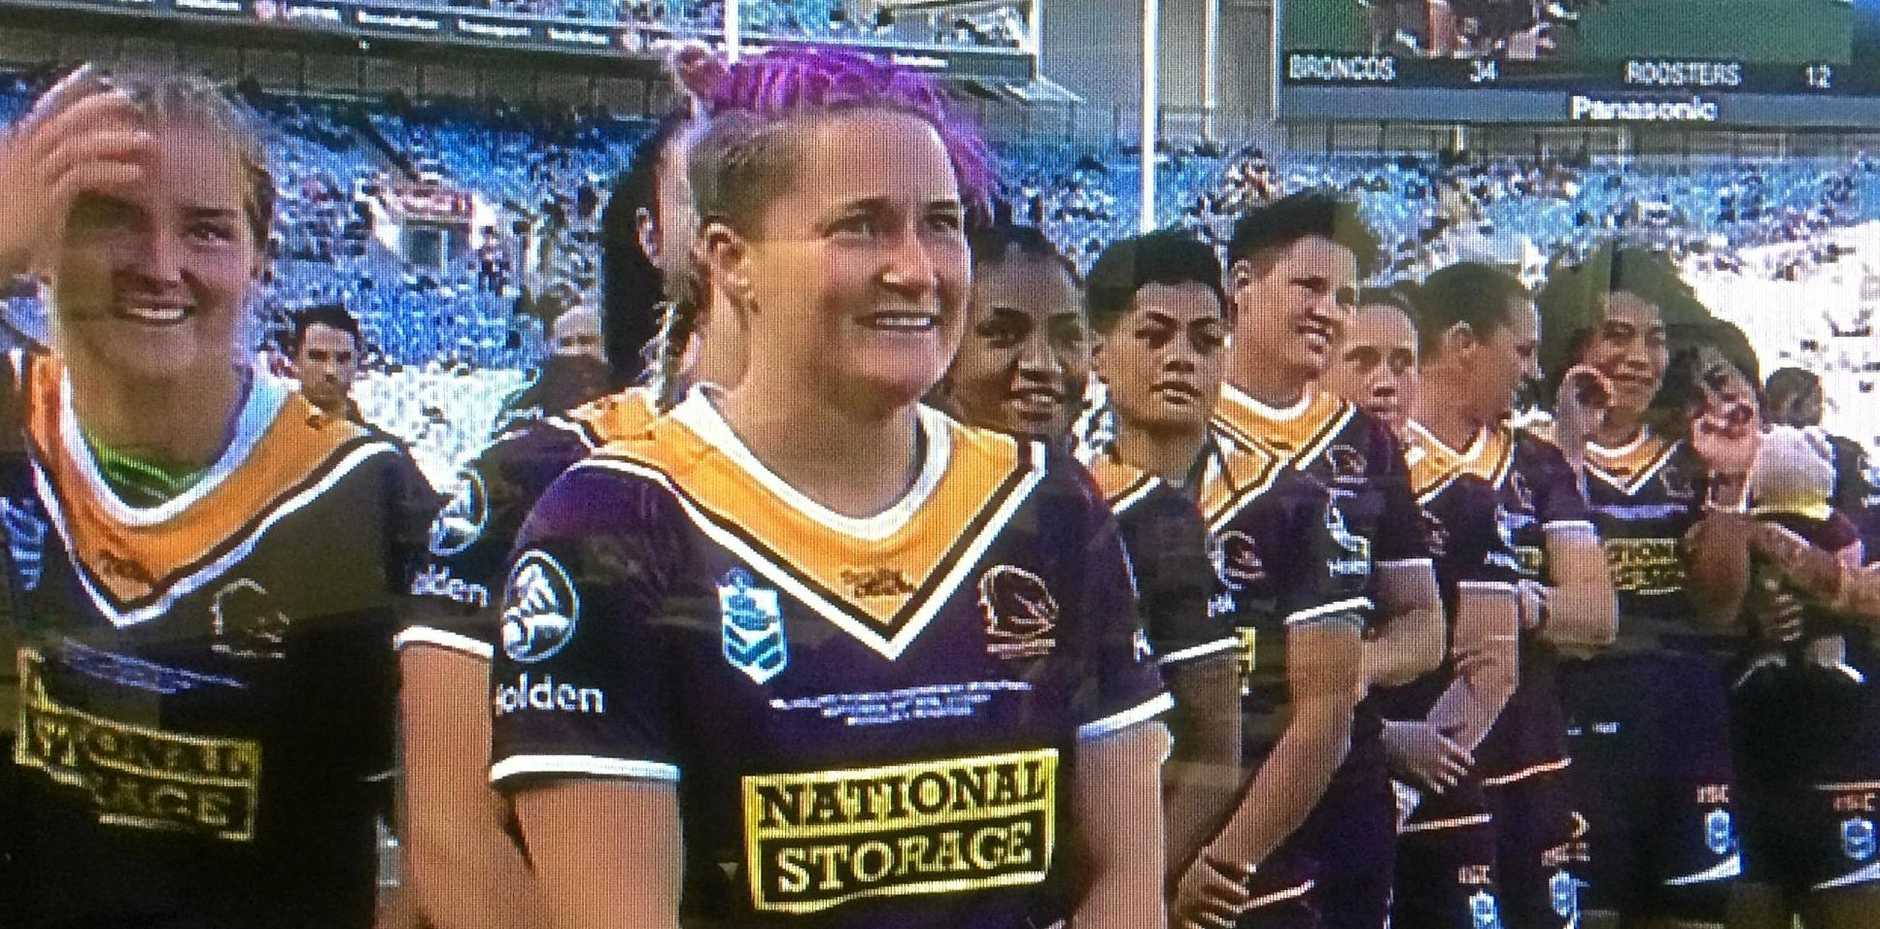 VICTORY: Chelsea Baker about to receive her NRLW Premiership ring after the Brisbane Broncos' 34-12 victory against Sydney Roosters in the 2018 NRLW Grand Final.